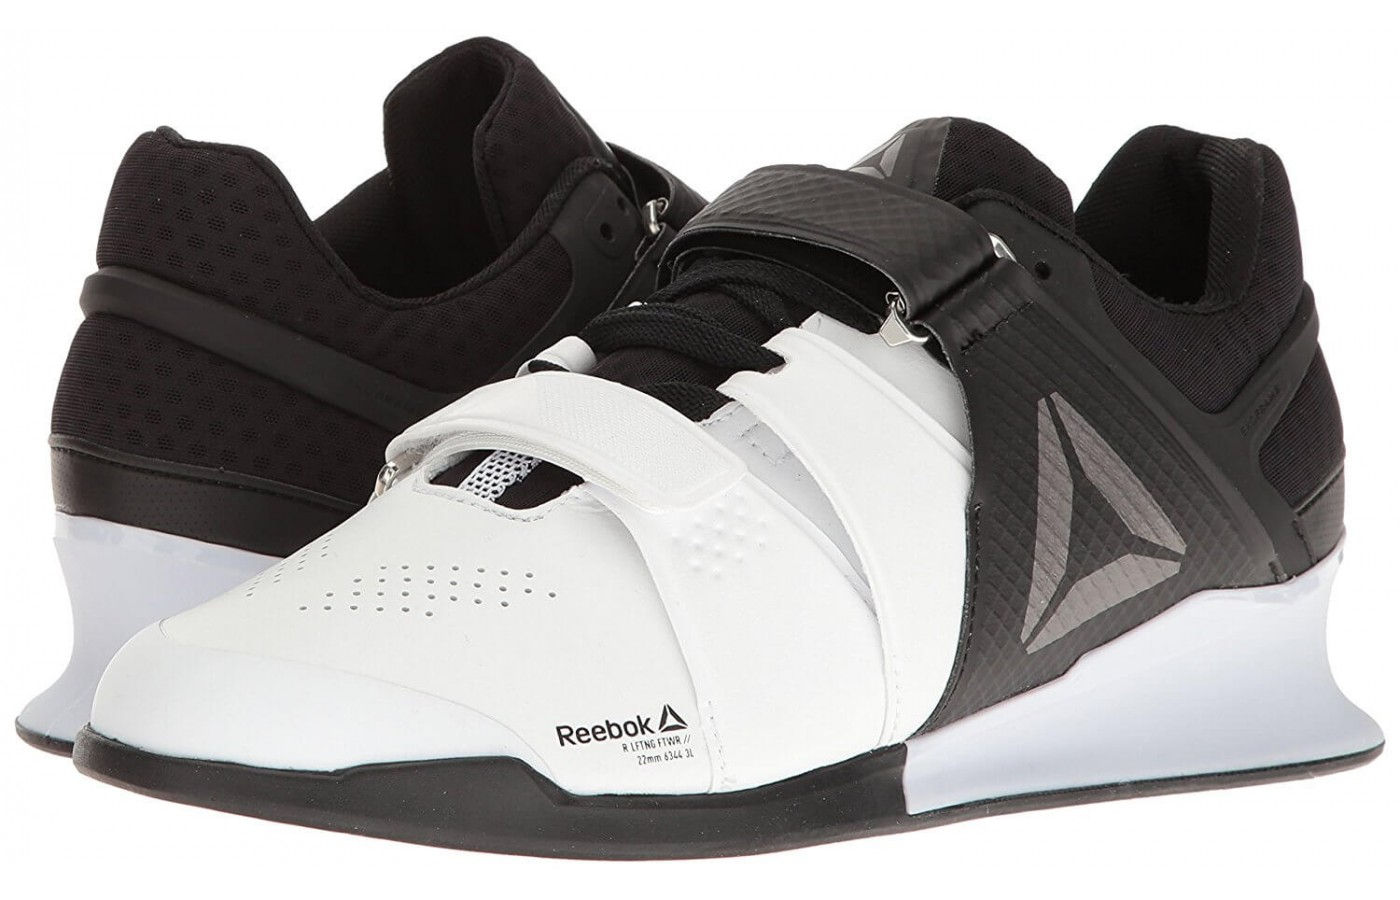 The Reebok Legacy Lifter features a 22mm drop height